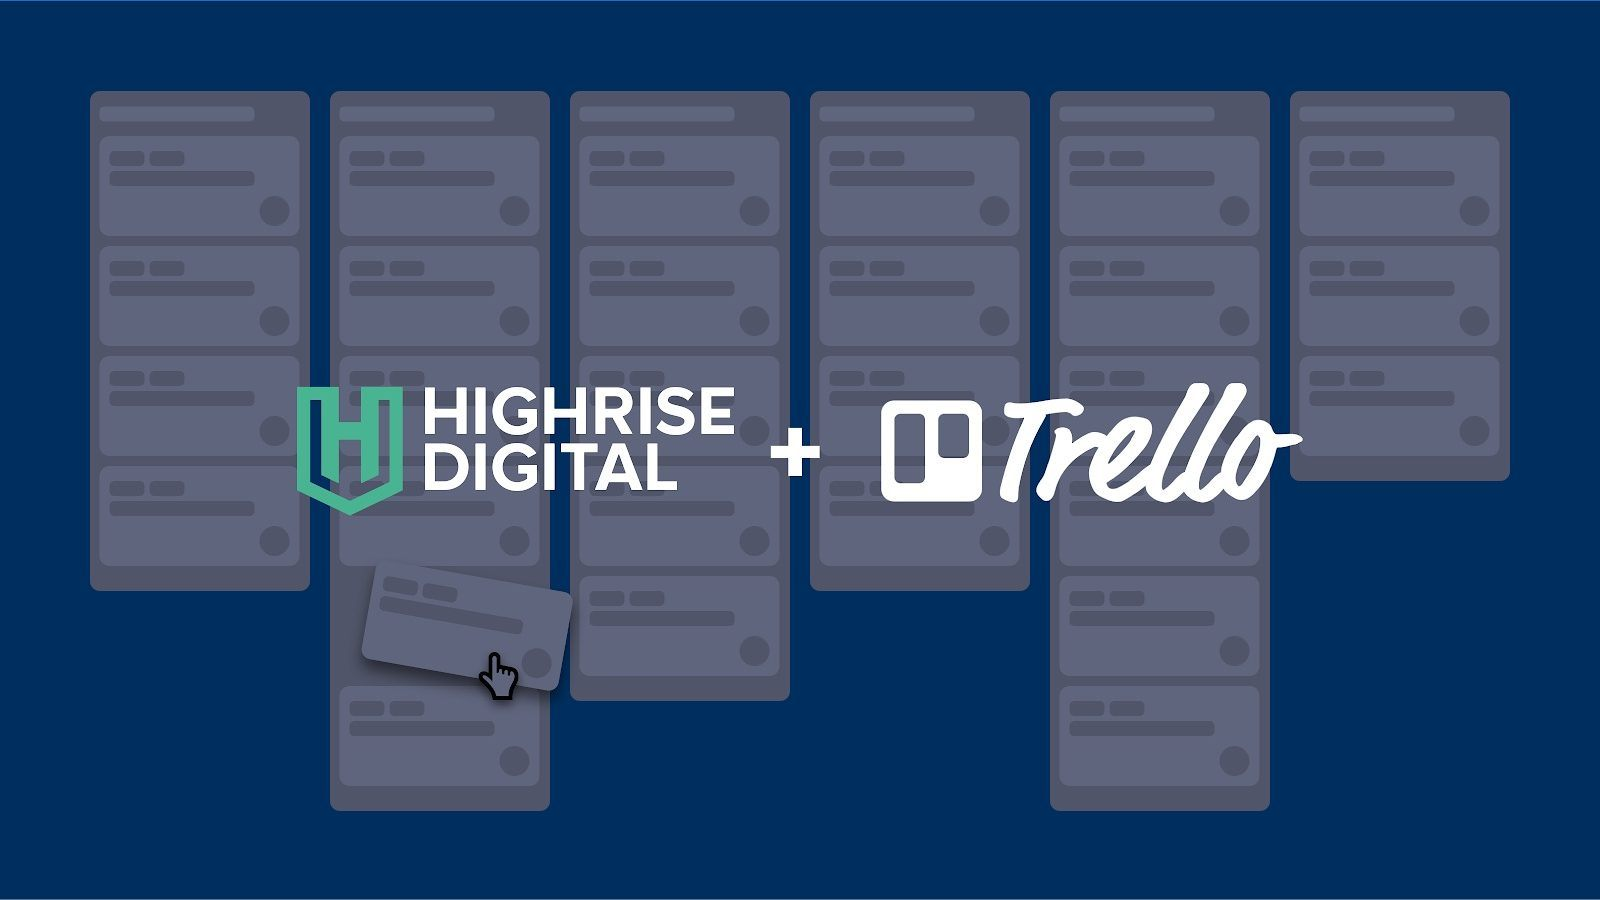 Over the last few months, we've been focusing on improving the way we manage our projects using Trello to communicate and organise our tasks.